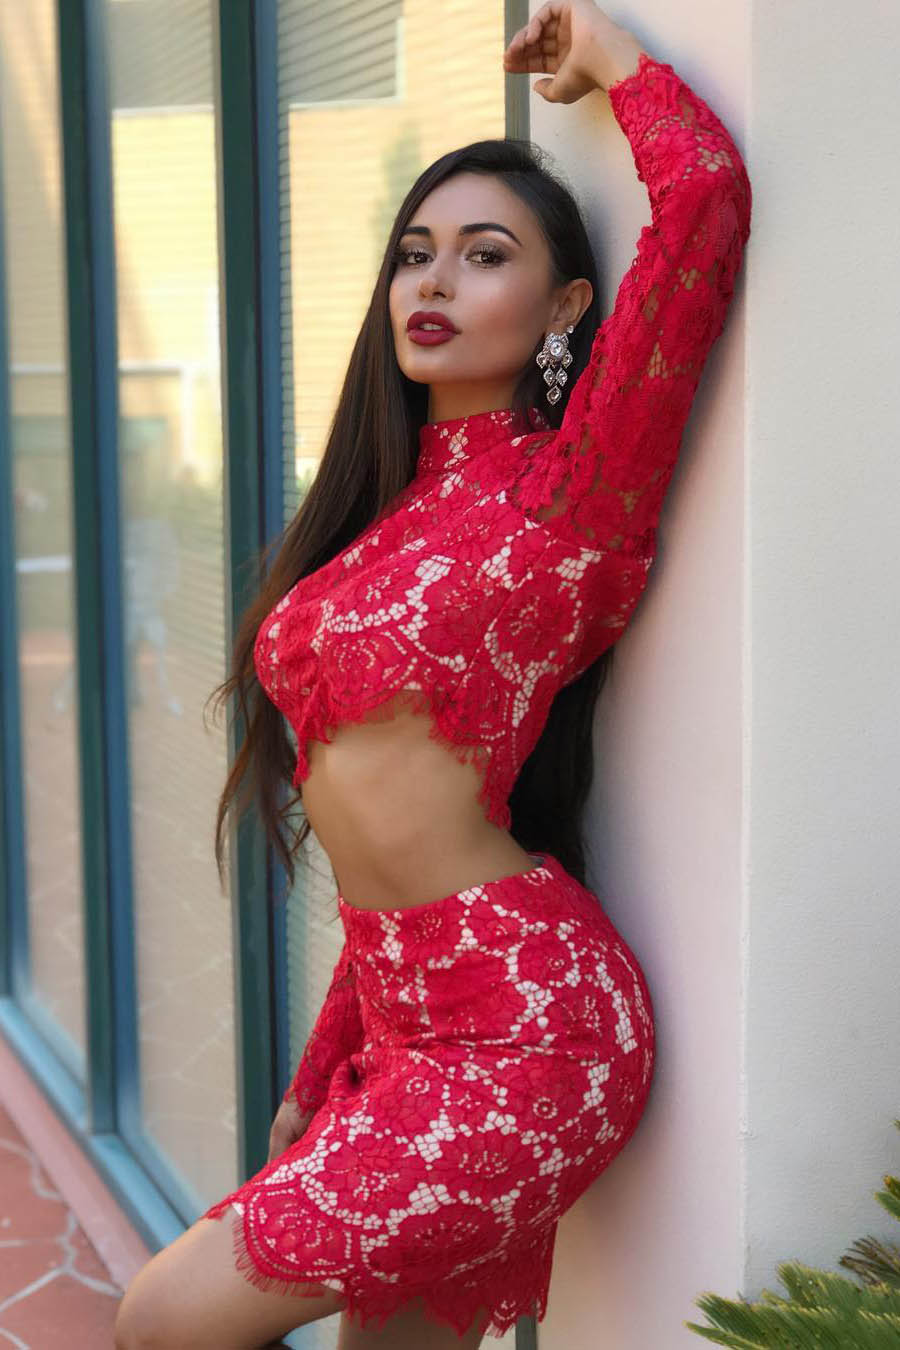 Kamila brunette escort girl